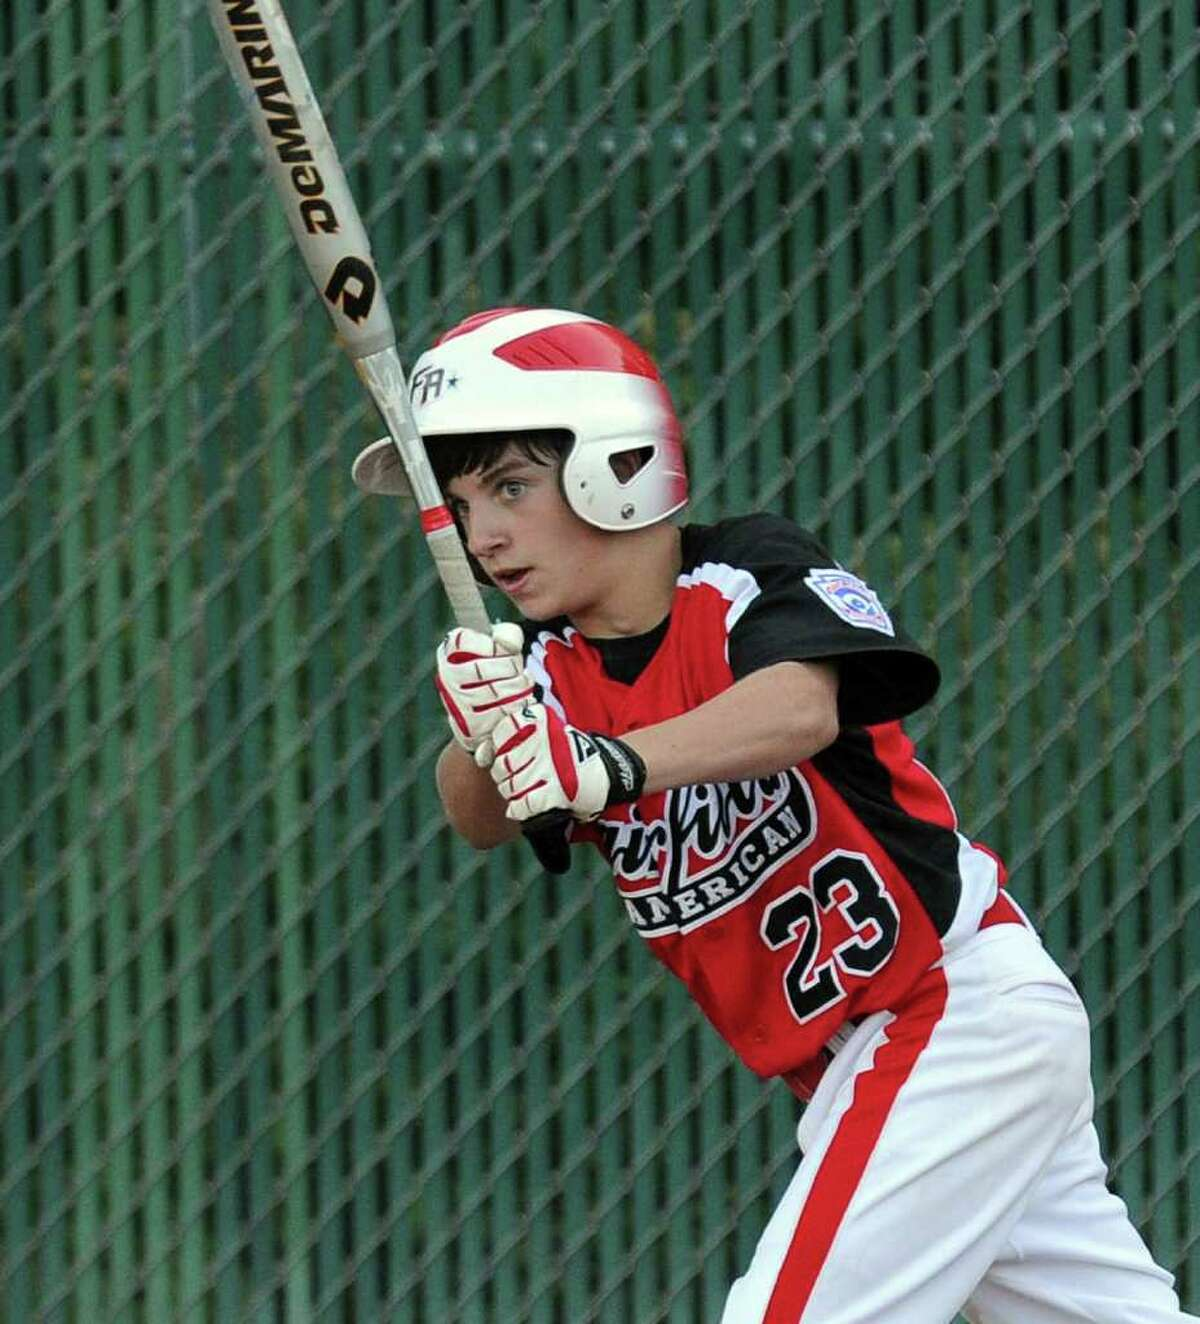 Highlights from the state little league baseball championship between Fairfield American and Glastonbury in Prospect, Conn. on Tuesday August 2, 2011.